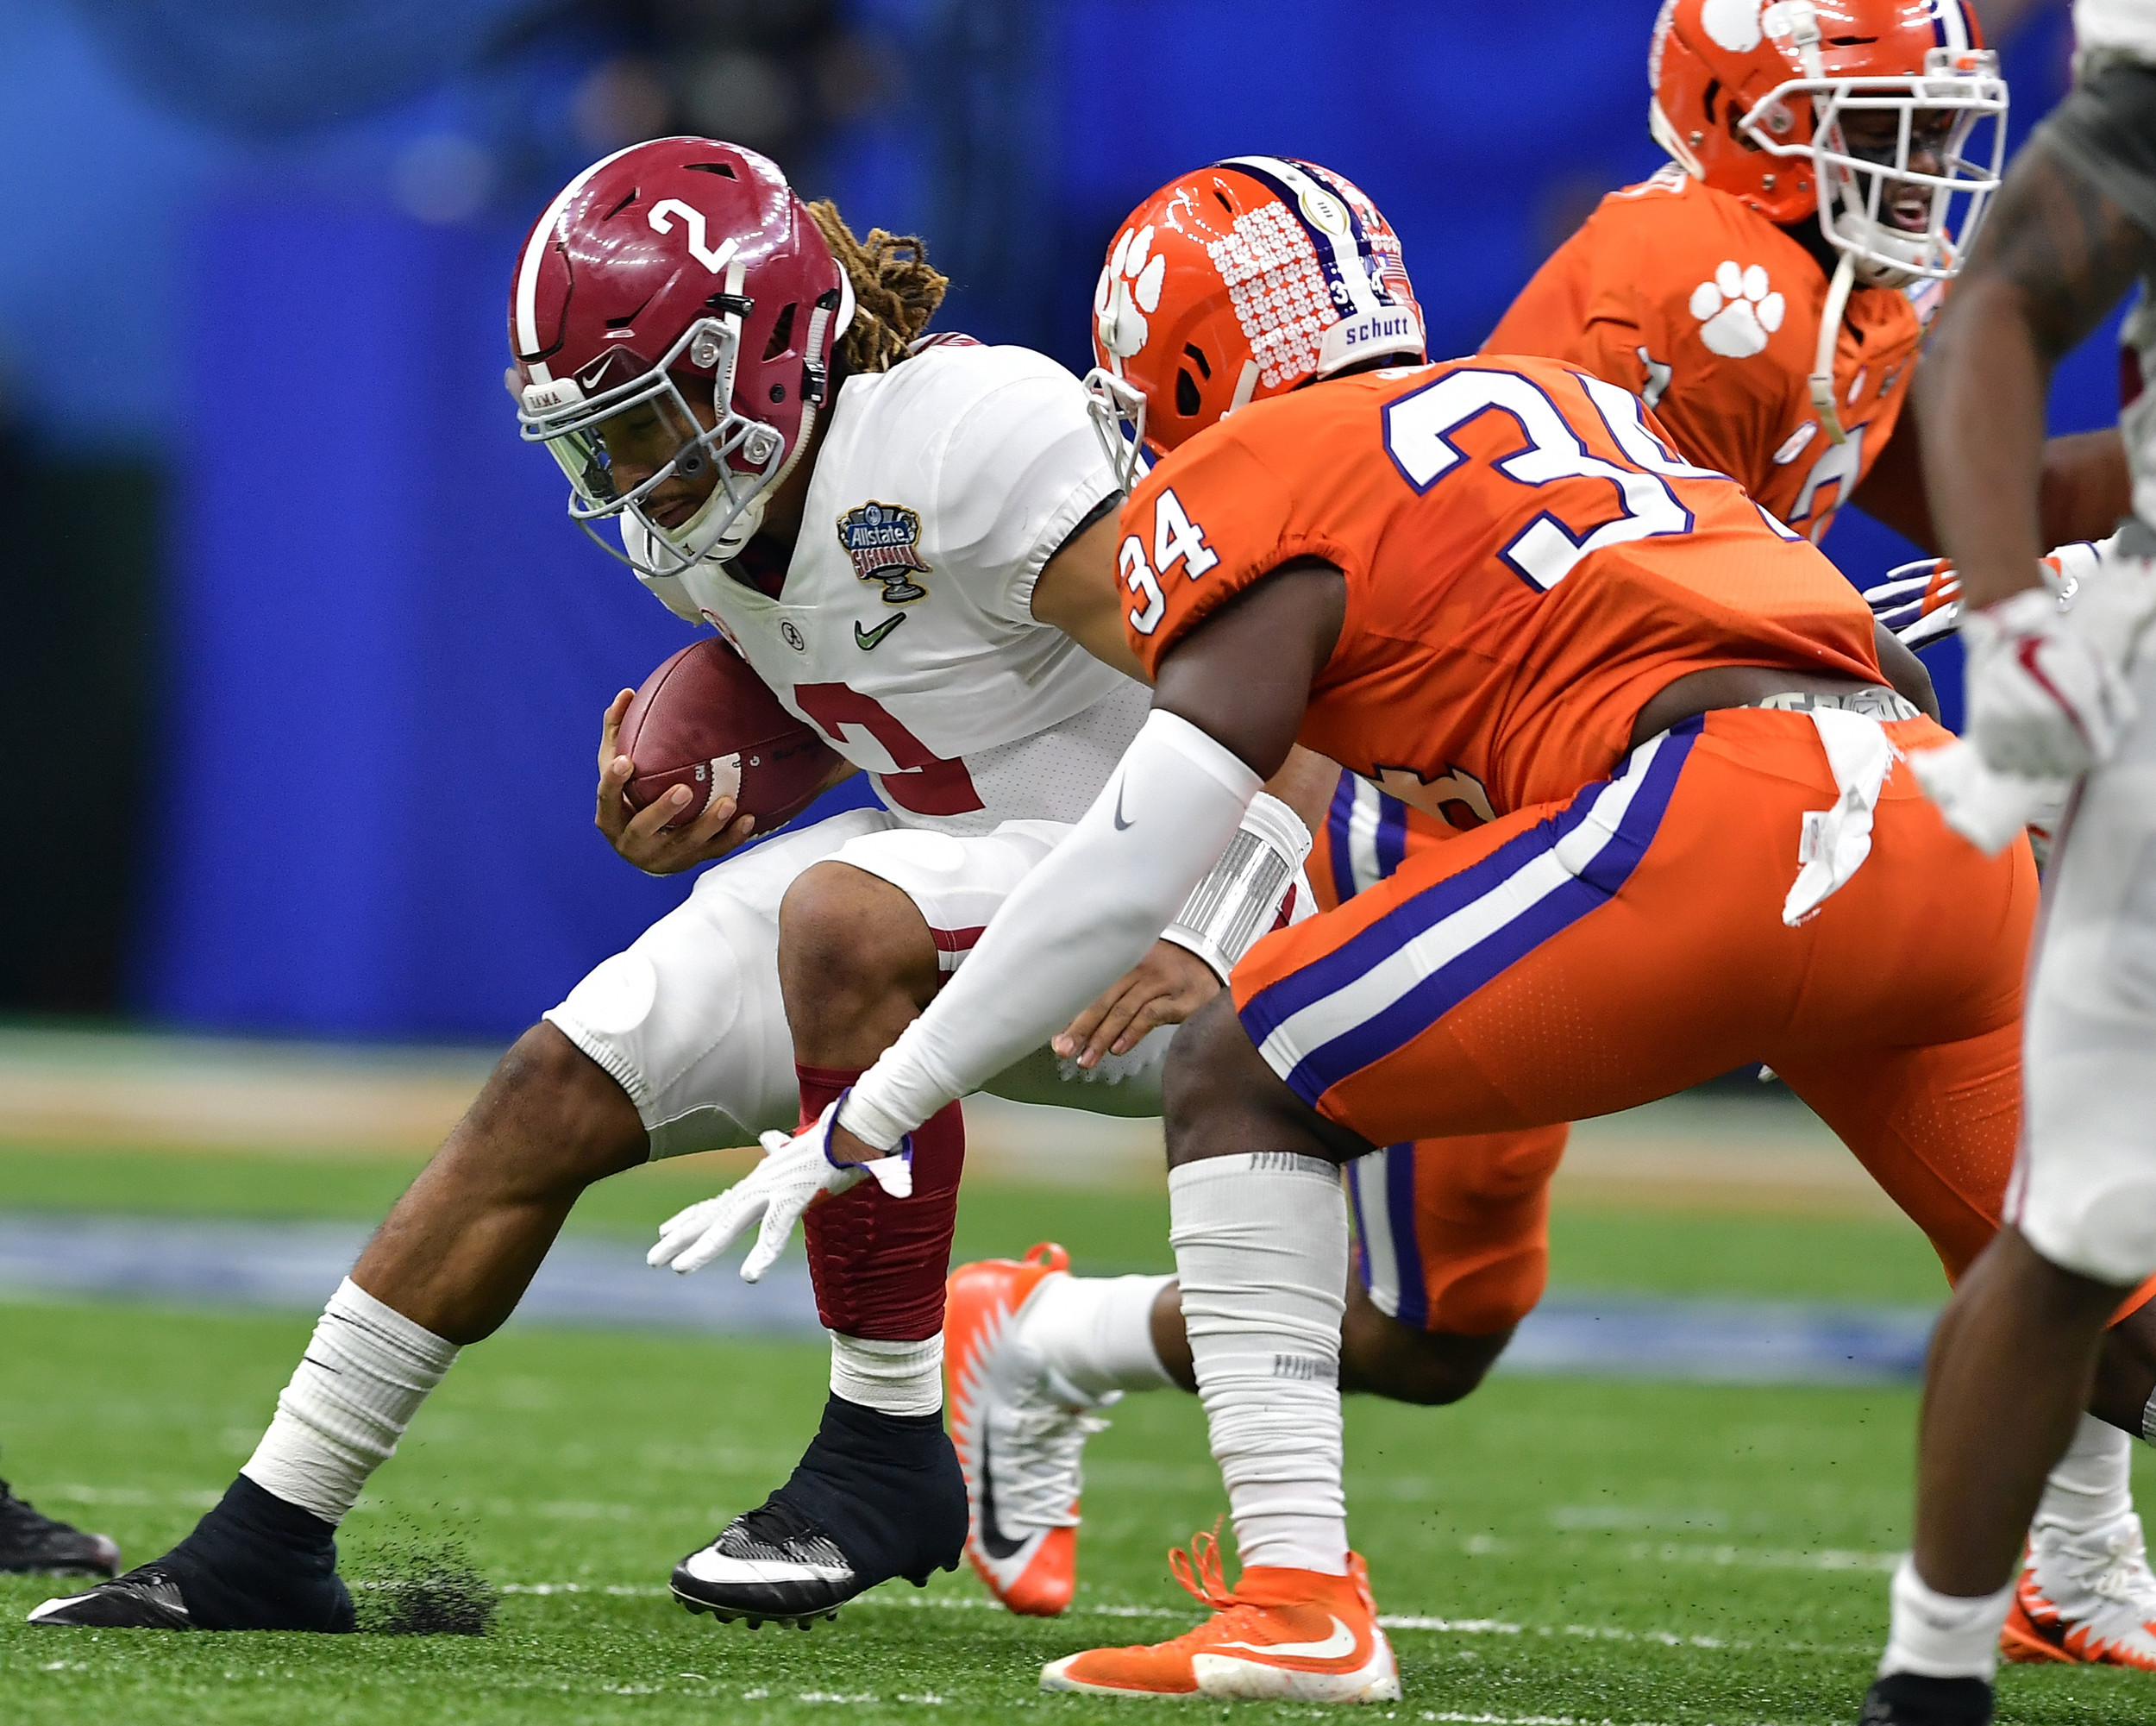 Alabama Crimson Tide quarterback Jalen Hurts (2) tries to avoid a tackle in the first half of the 2018 AllState Sugar Bowl on Jan. 1, 2018, at the Mercedes-Benz SuperDome in New Orleans, La. Alabama won the game 24-6. (Photo by Lee Walls)